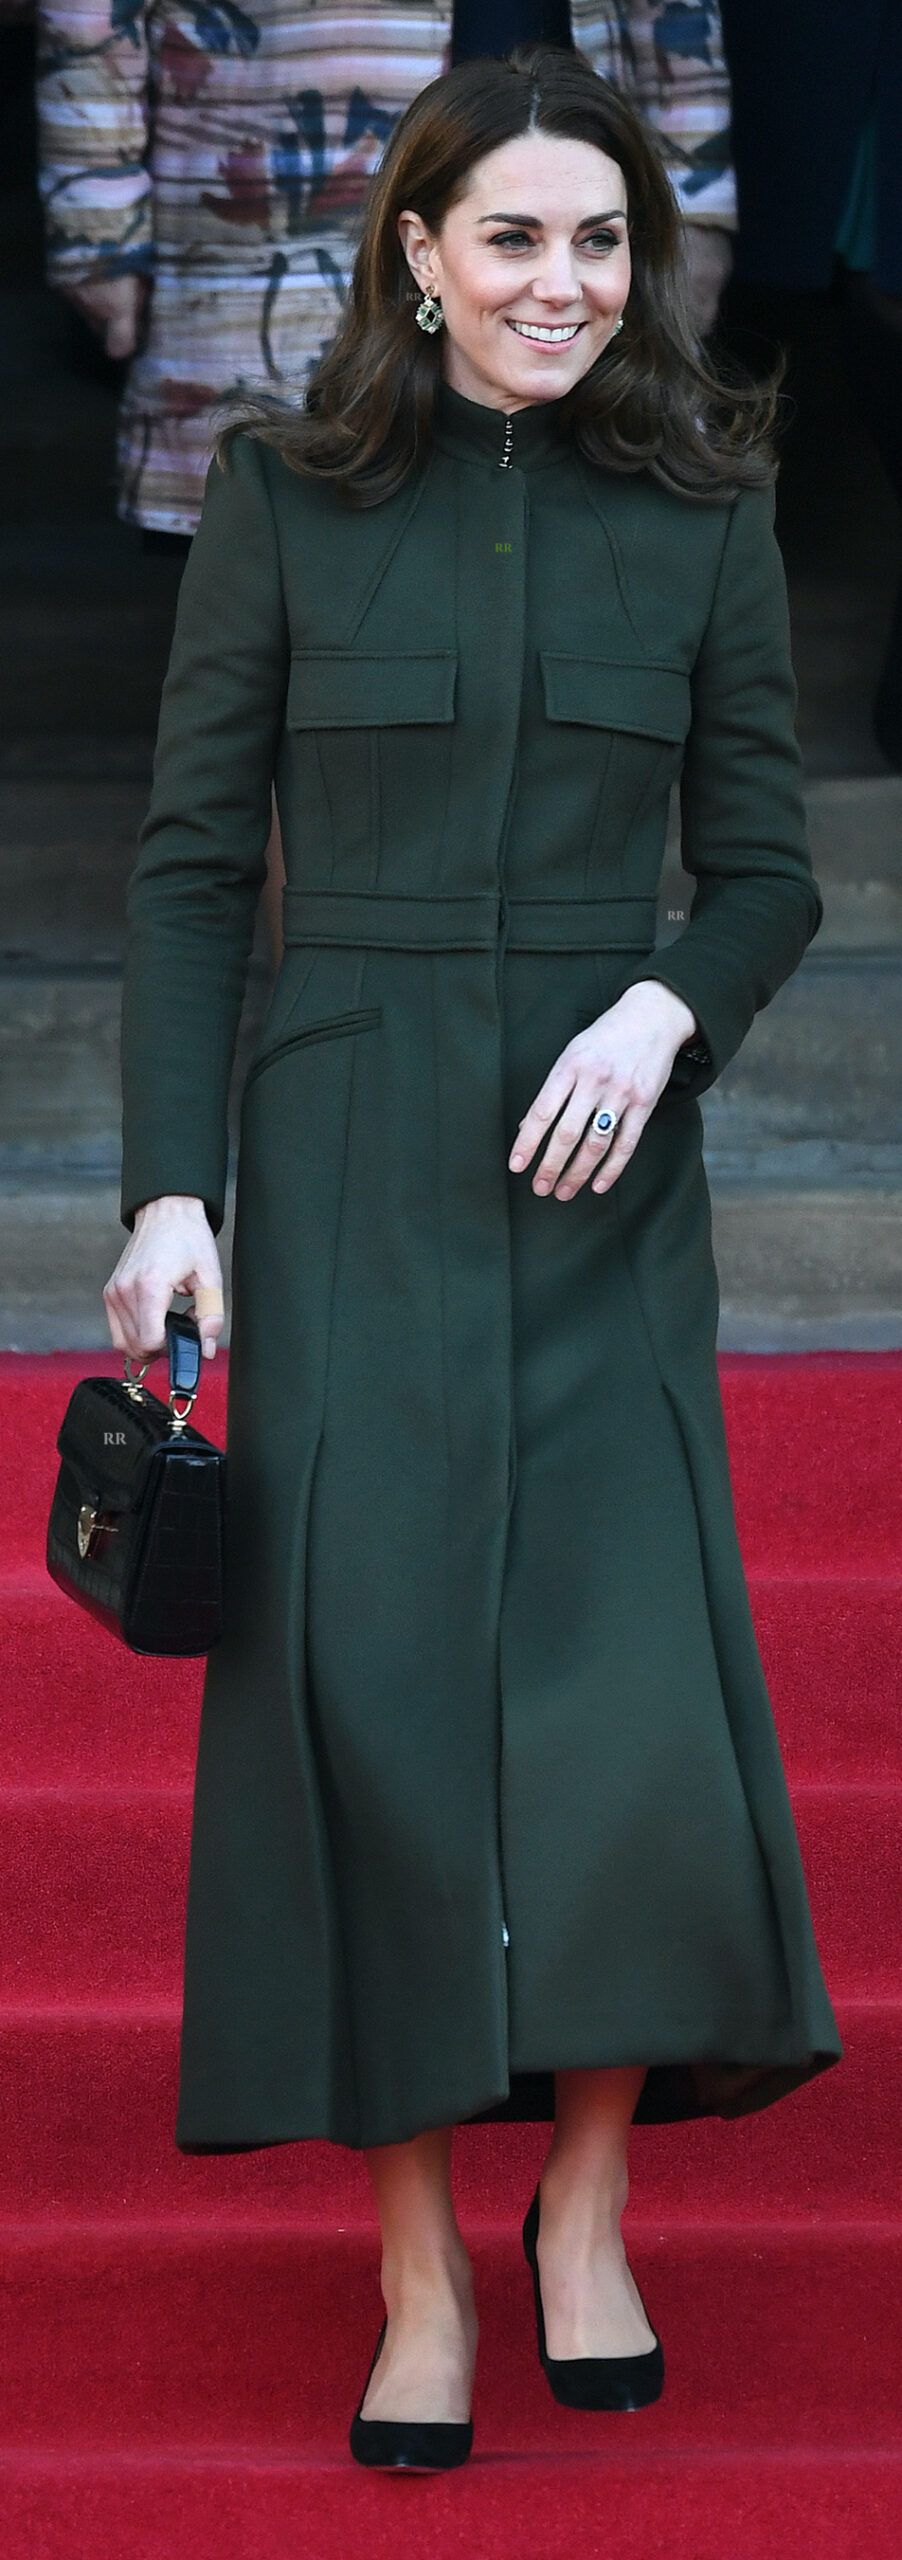 The Duchess of Cambridge in a custom dark green maxi coat from McQueen, on a visit to Bradford.